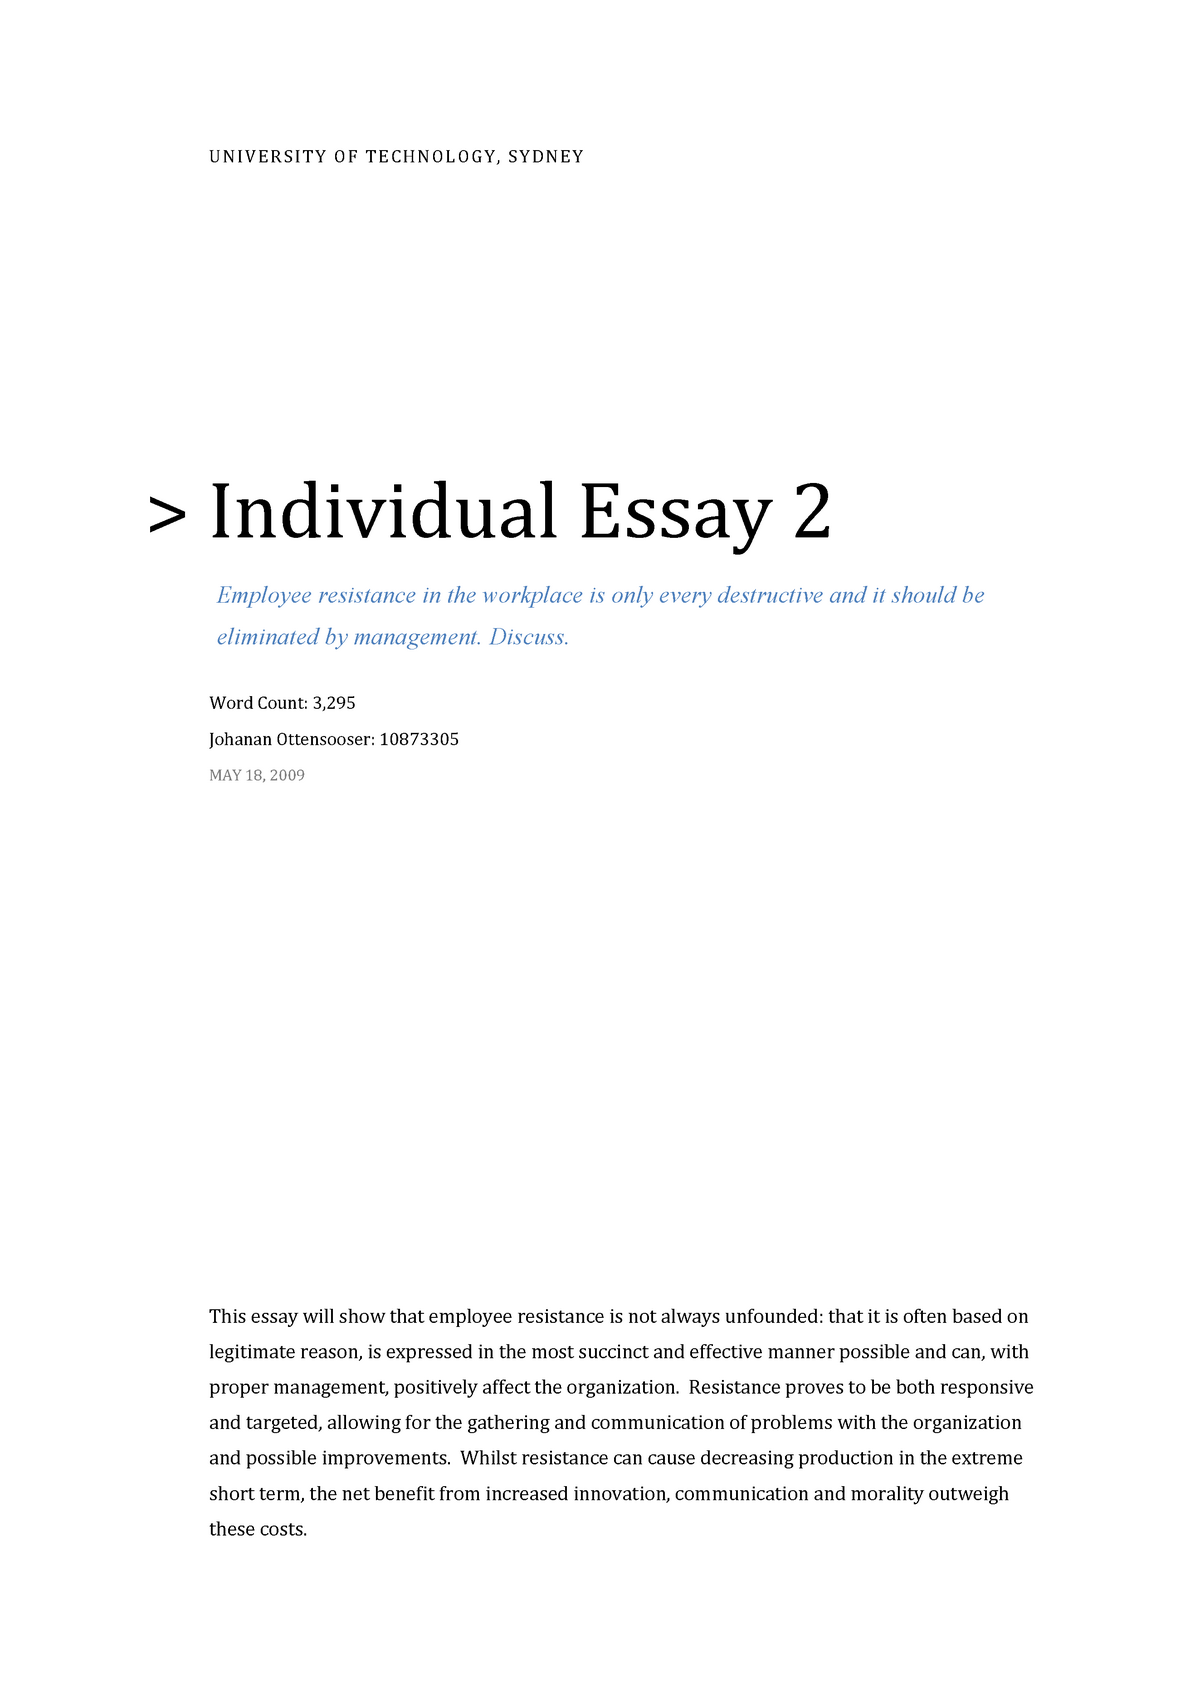 Example Of A Good Thesis Statement For An Essay  Sample Business Essay also Scholarship Essay Managing People And Organisations Essay      Uts  Essay On Healthy Foods